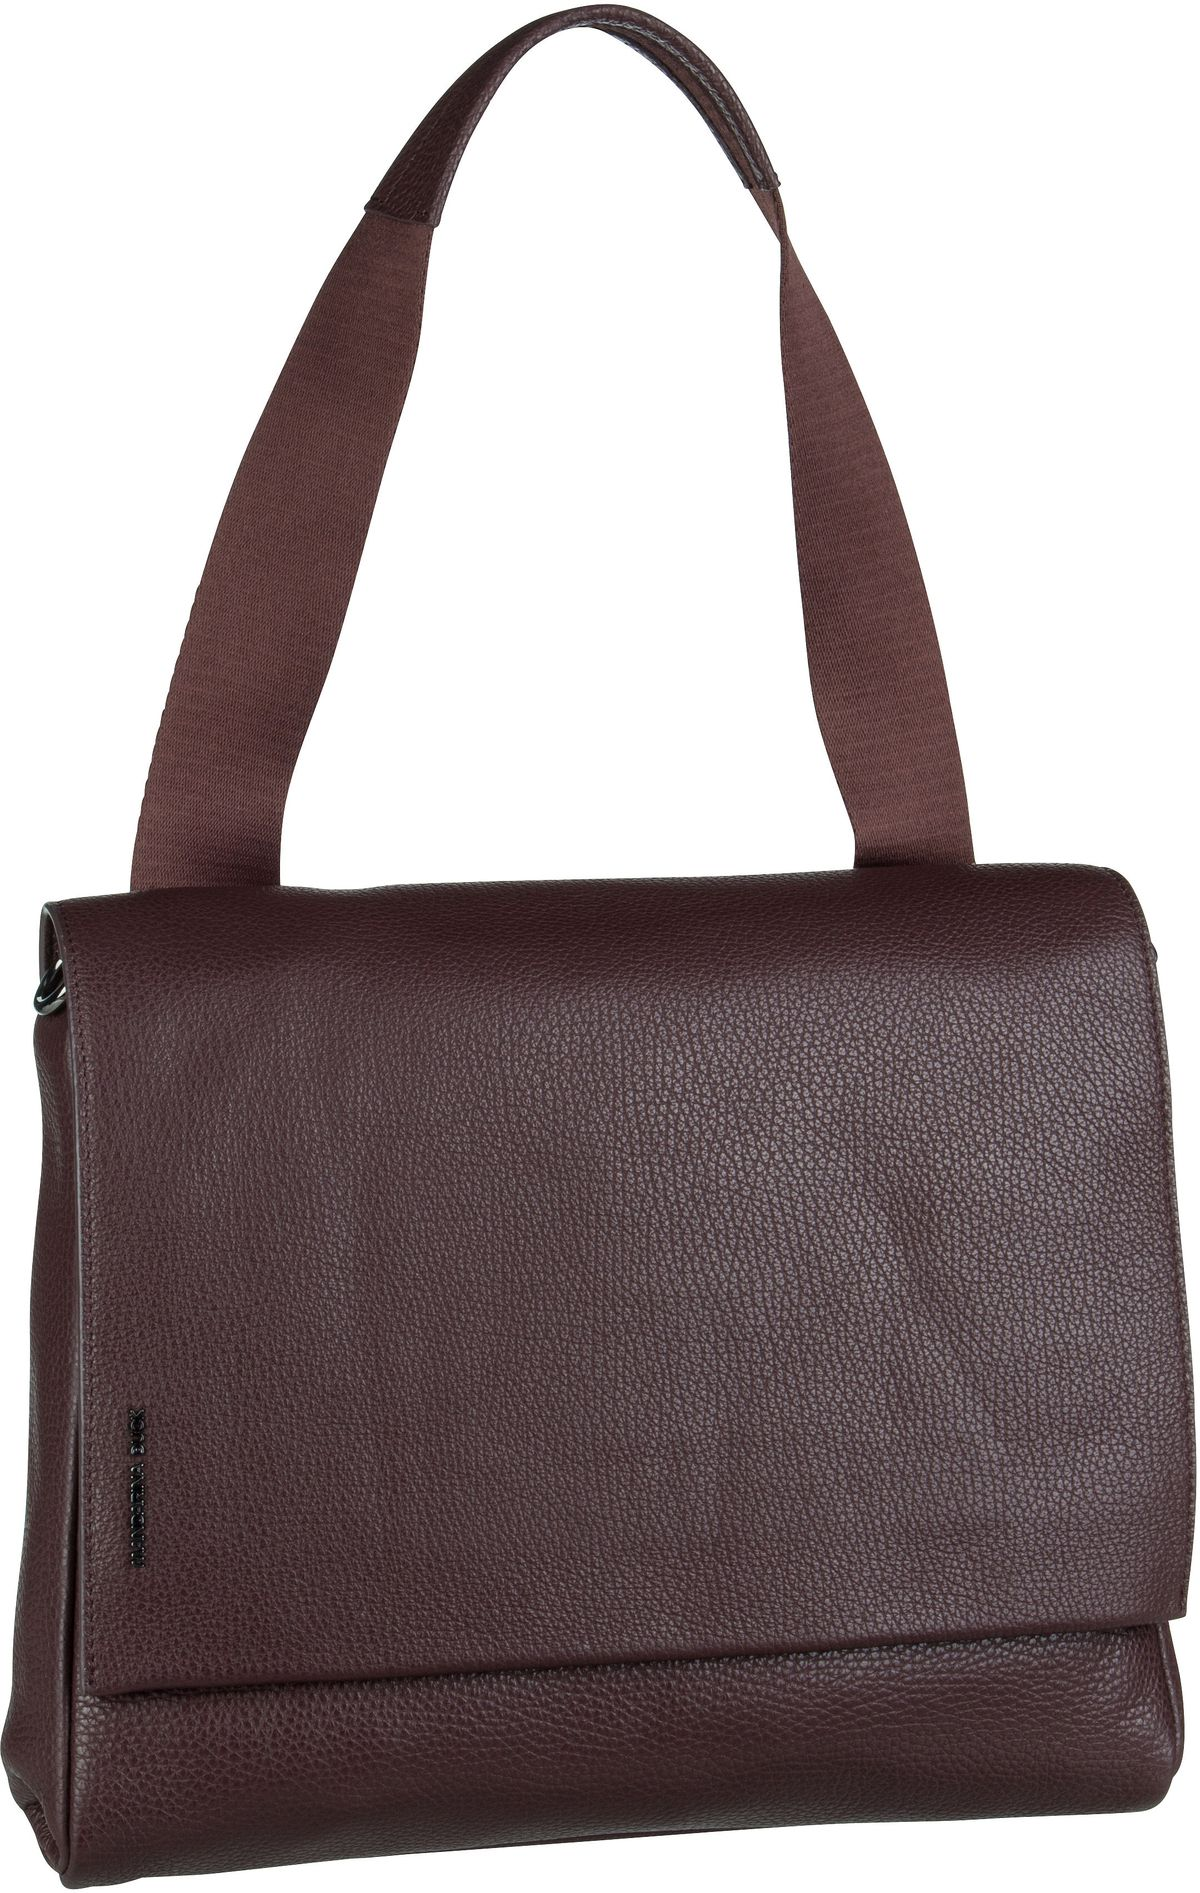 Handtasche Mellow Leather Crossover FZT97 Vineyard Wine